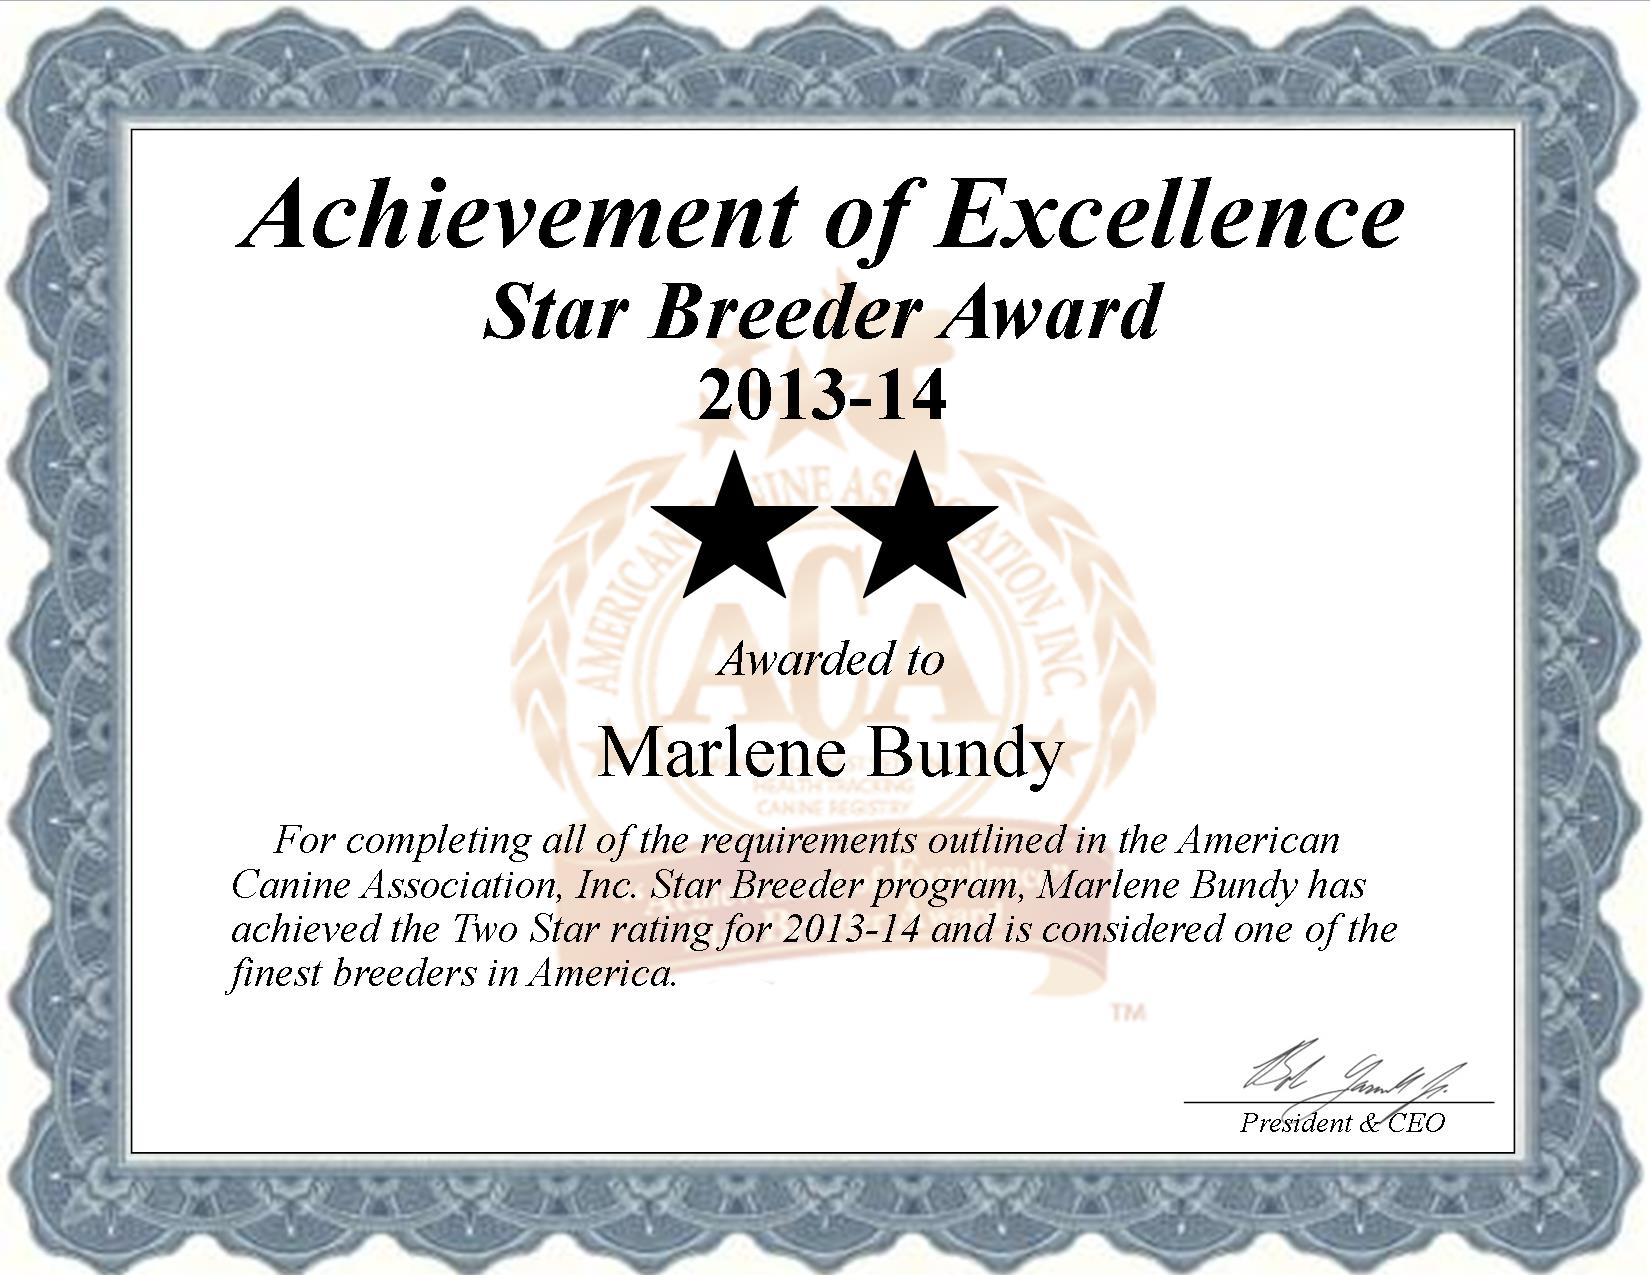 Marlene, Bundy, Marlene Bundy, Bundy Kennel, breeder, star breeder, aca, star breeder, 2 star, shell knob, shellknob, Missouri, MO, dog, puppy, puppies